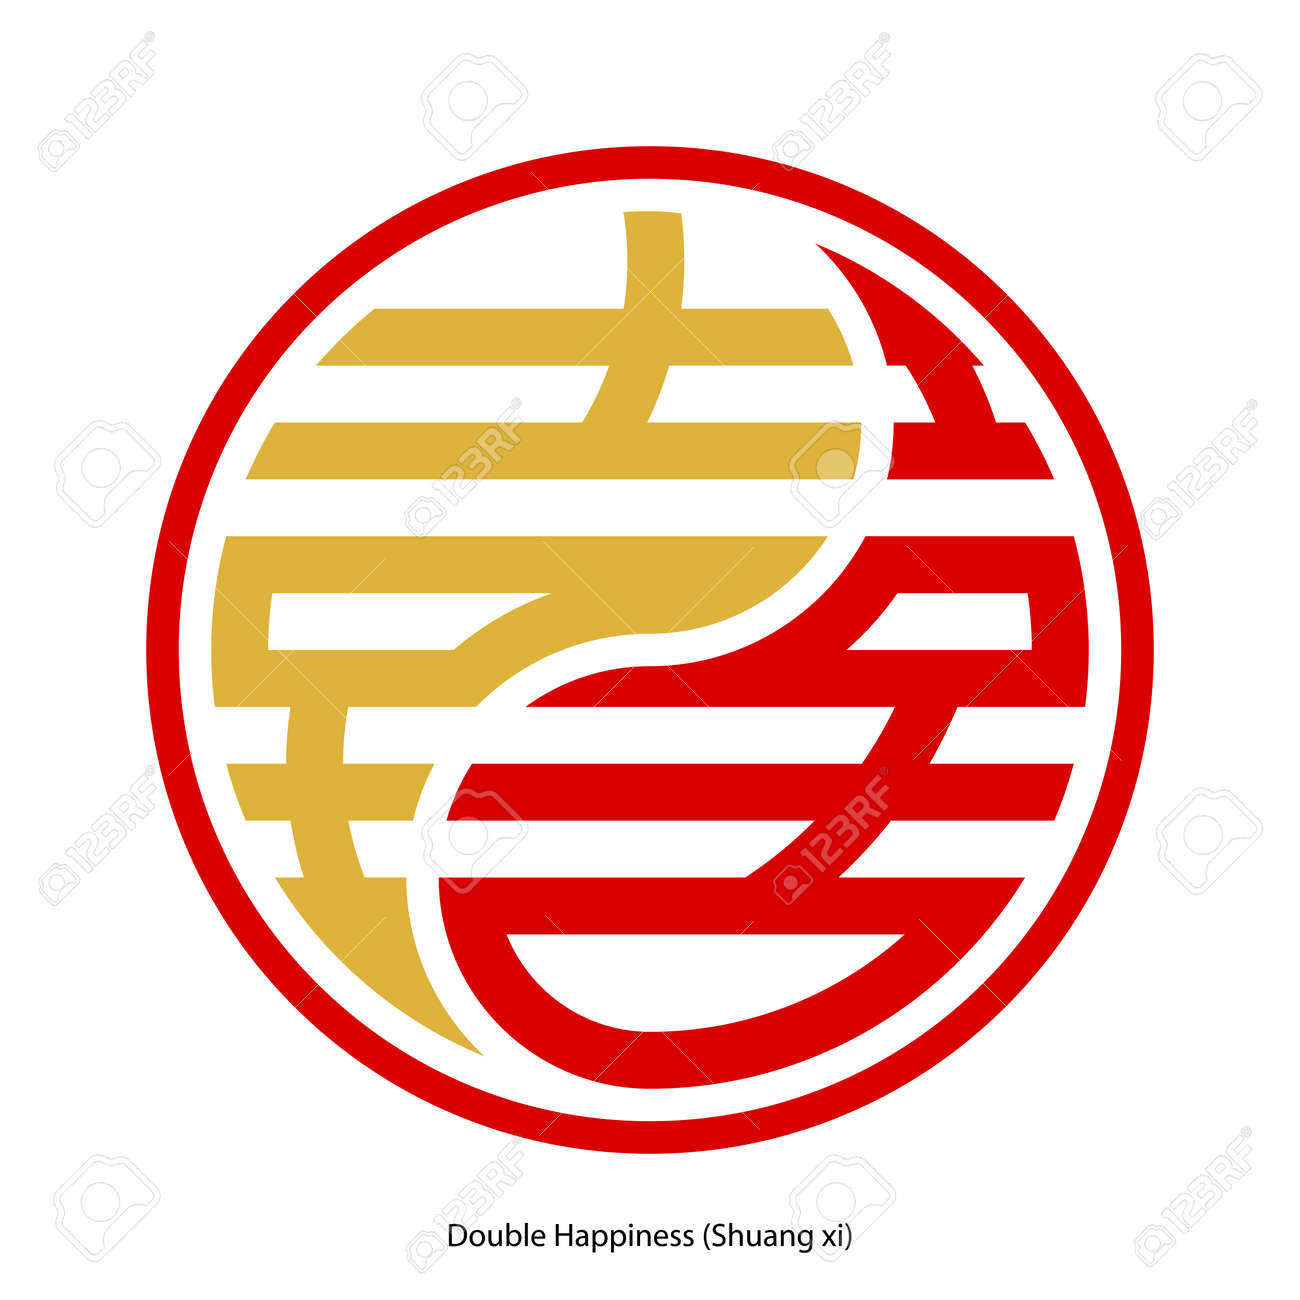 Chinese Character Double Happiness With Yin And Yang Symbol